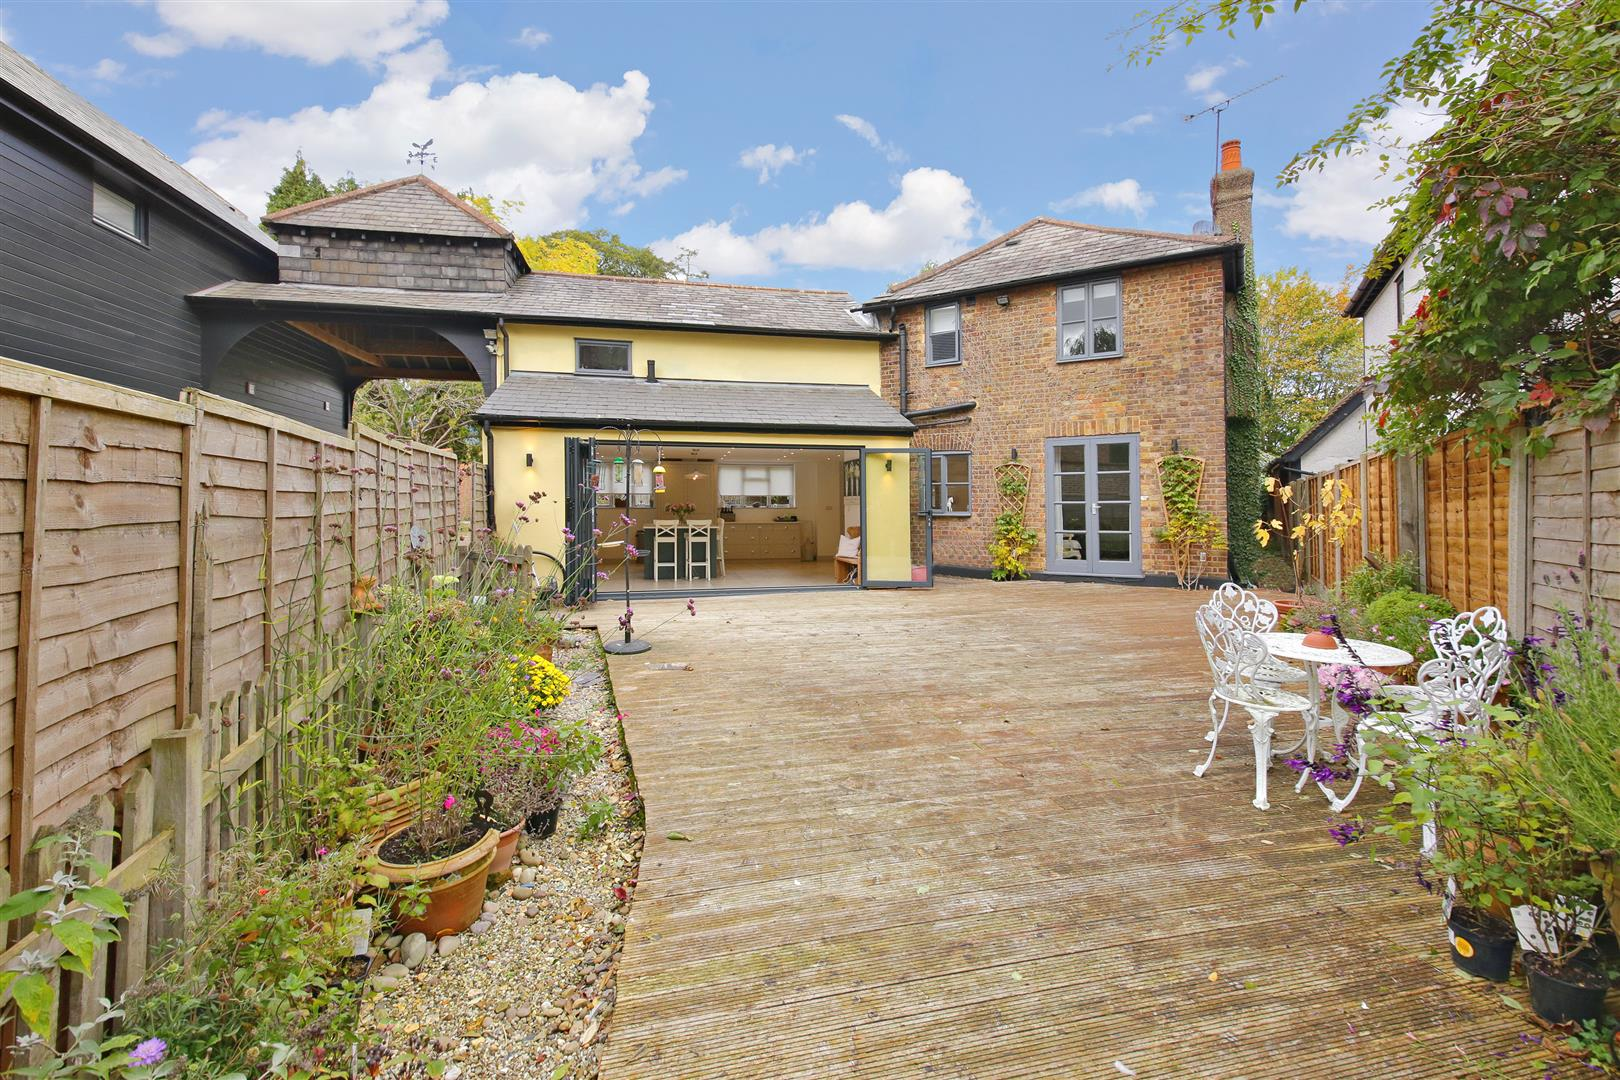 5 bed to rent in Letchmore Heath - (Property Image 14)